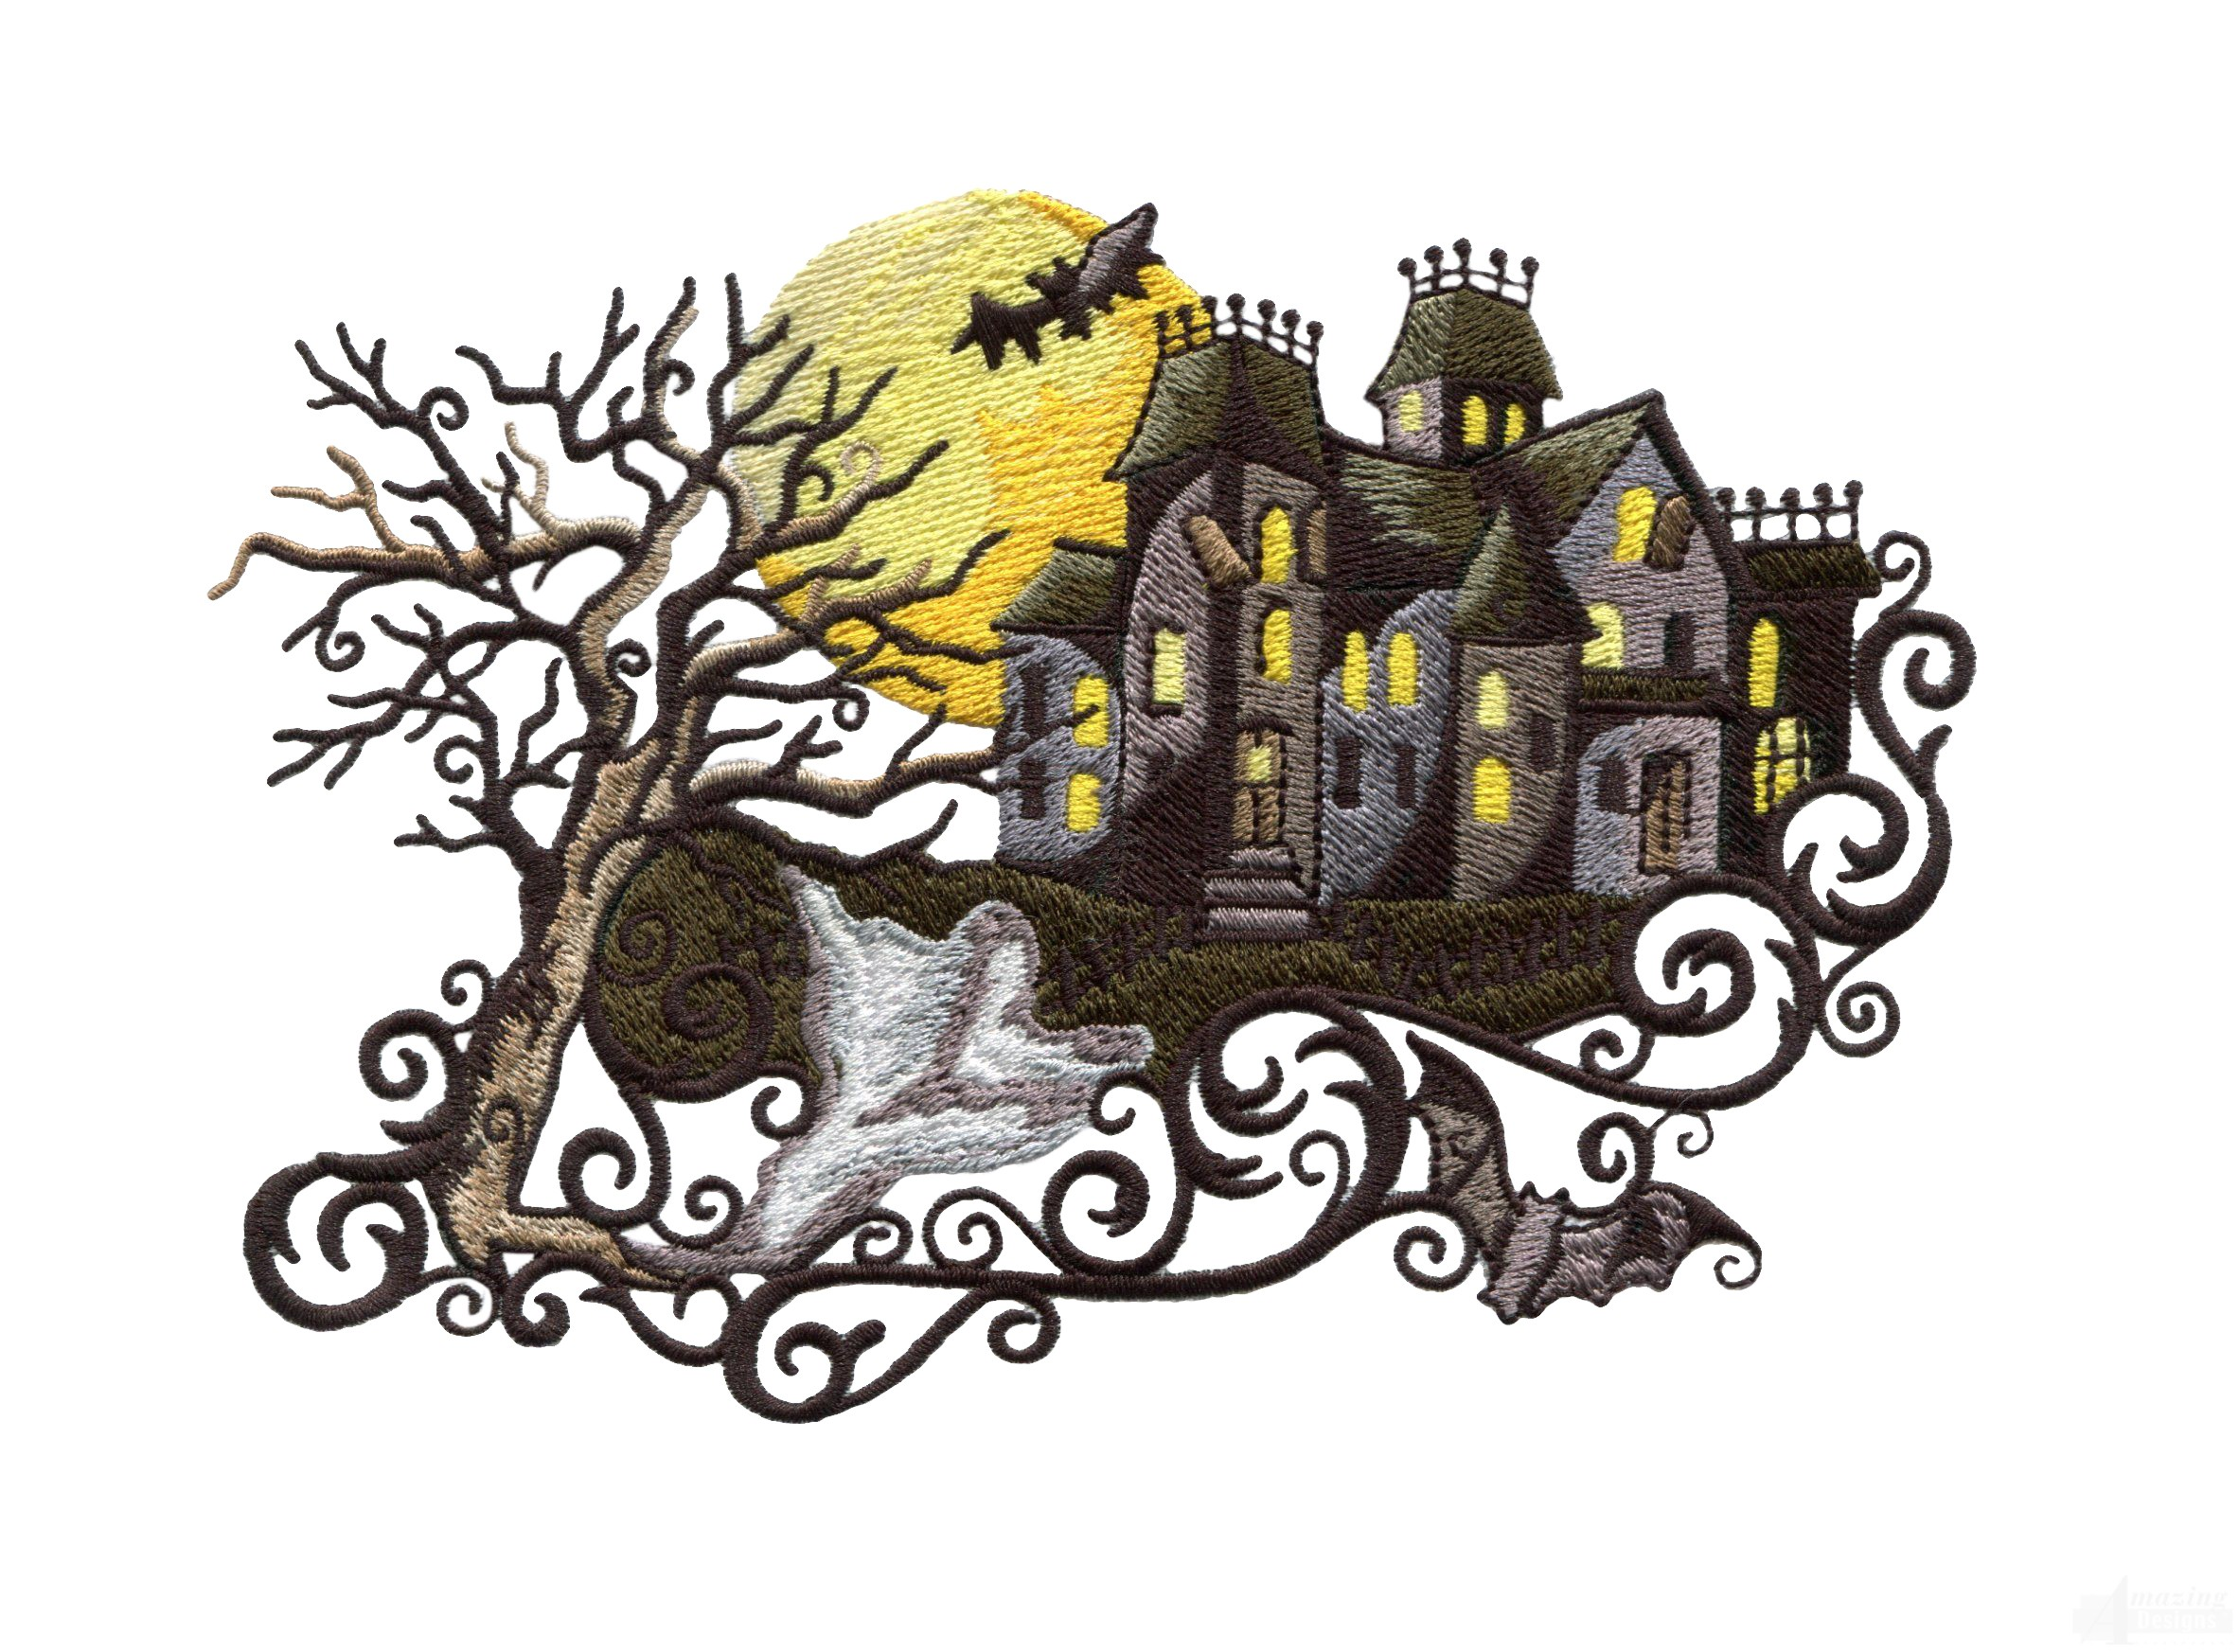 Swnbh bewitching halloween embroidery design